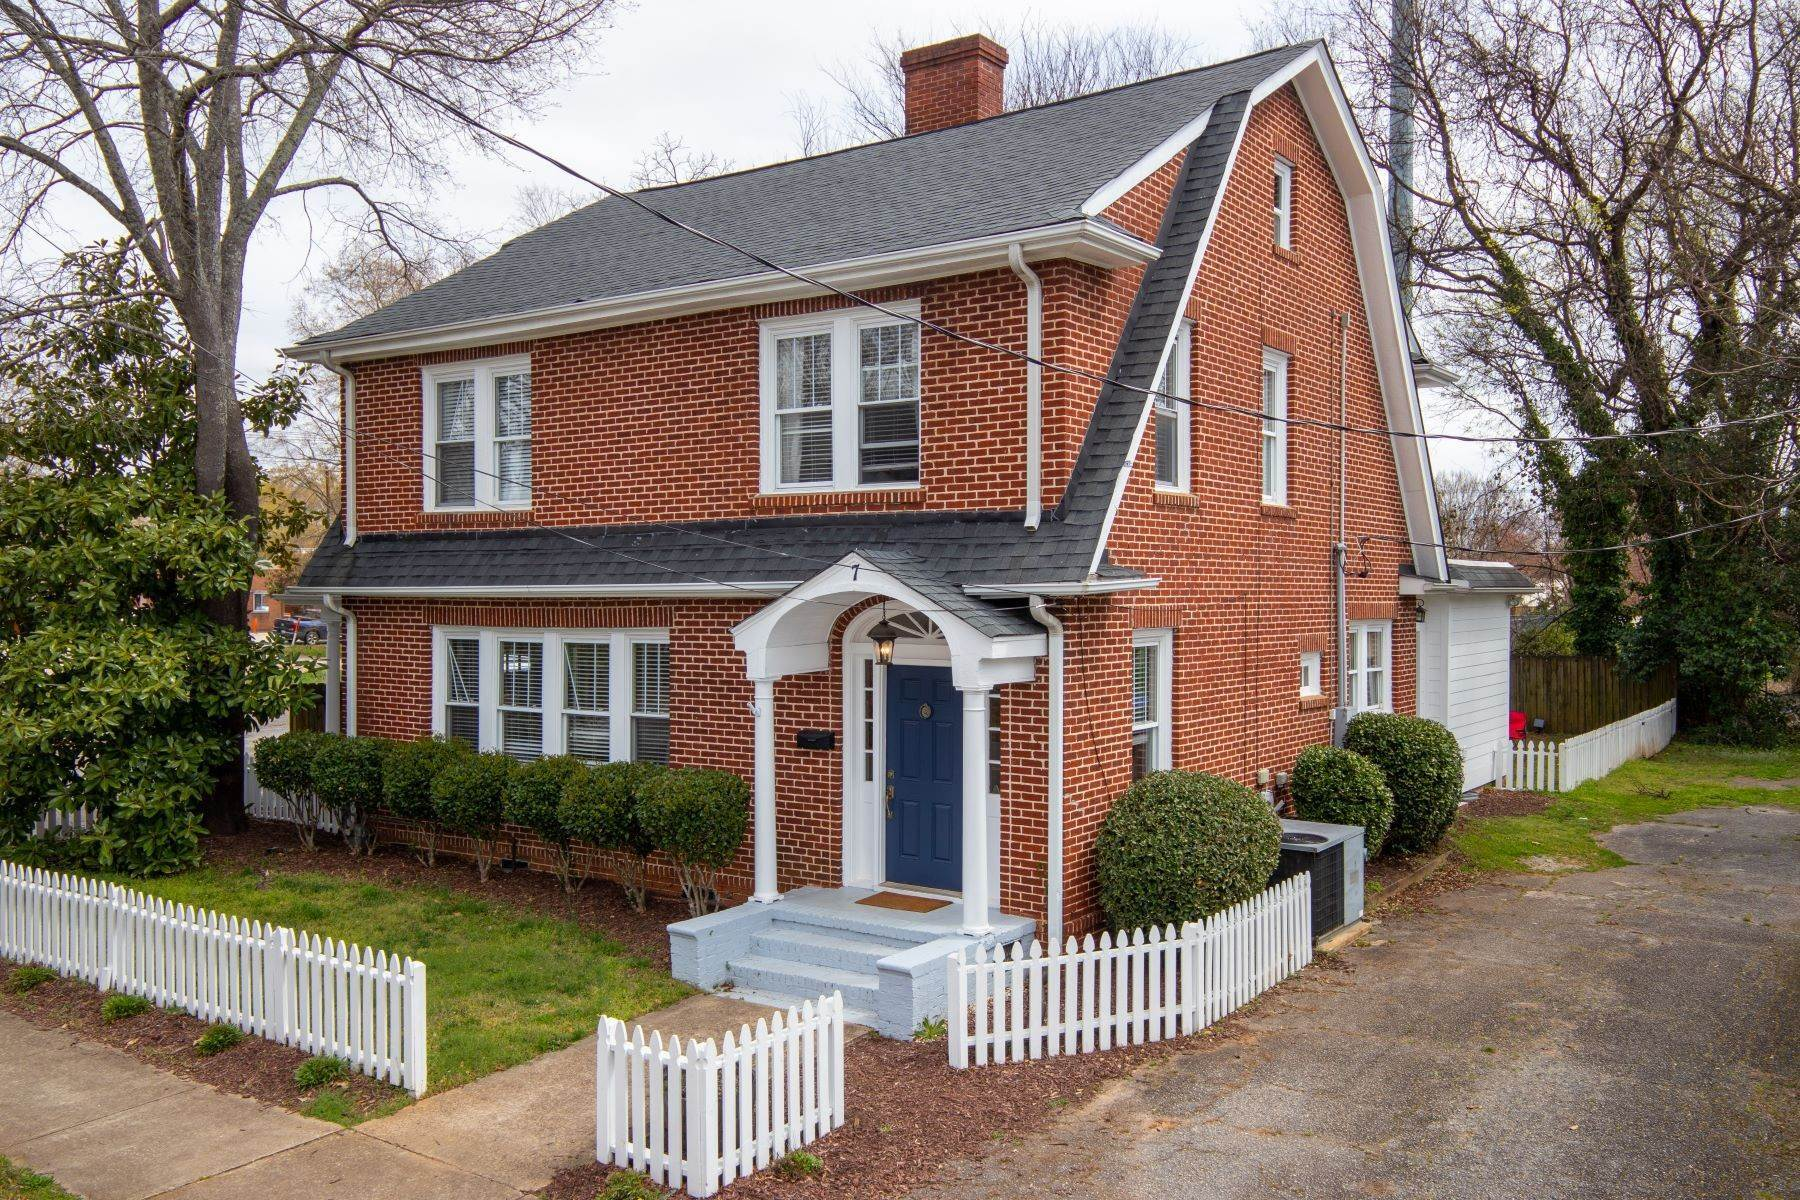 Single Family Homes for Sale at UNDER CONTRACT! 7 South Memminger Street, Greenville, SC 29601 Greenville, SC 29601